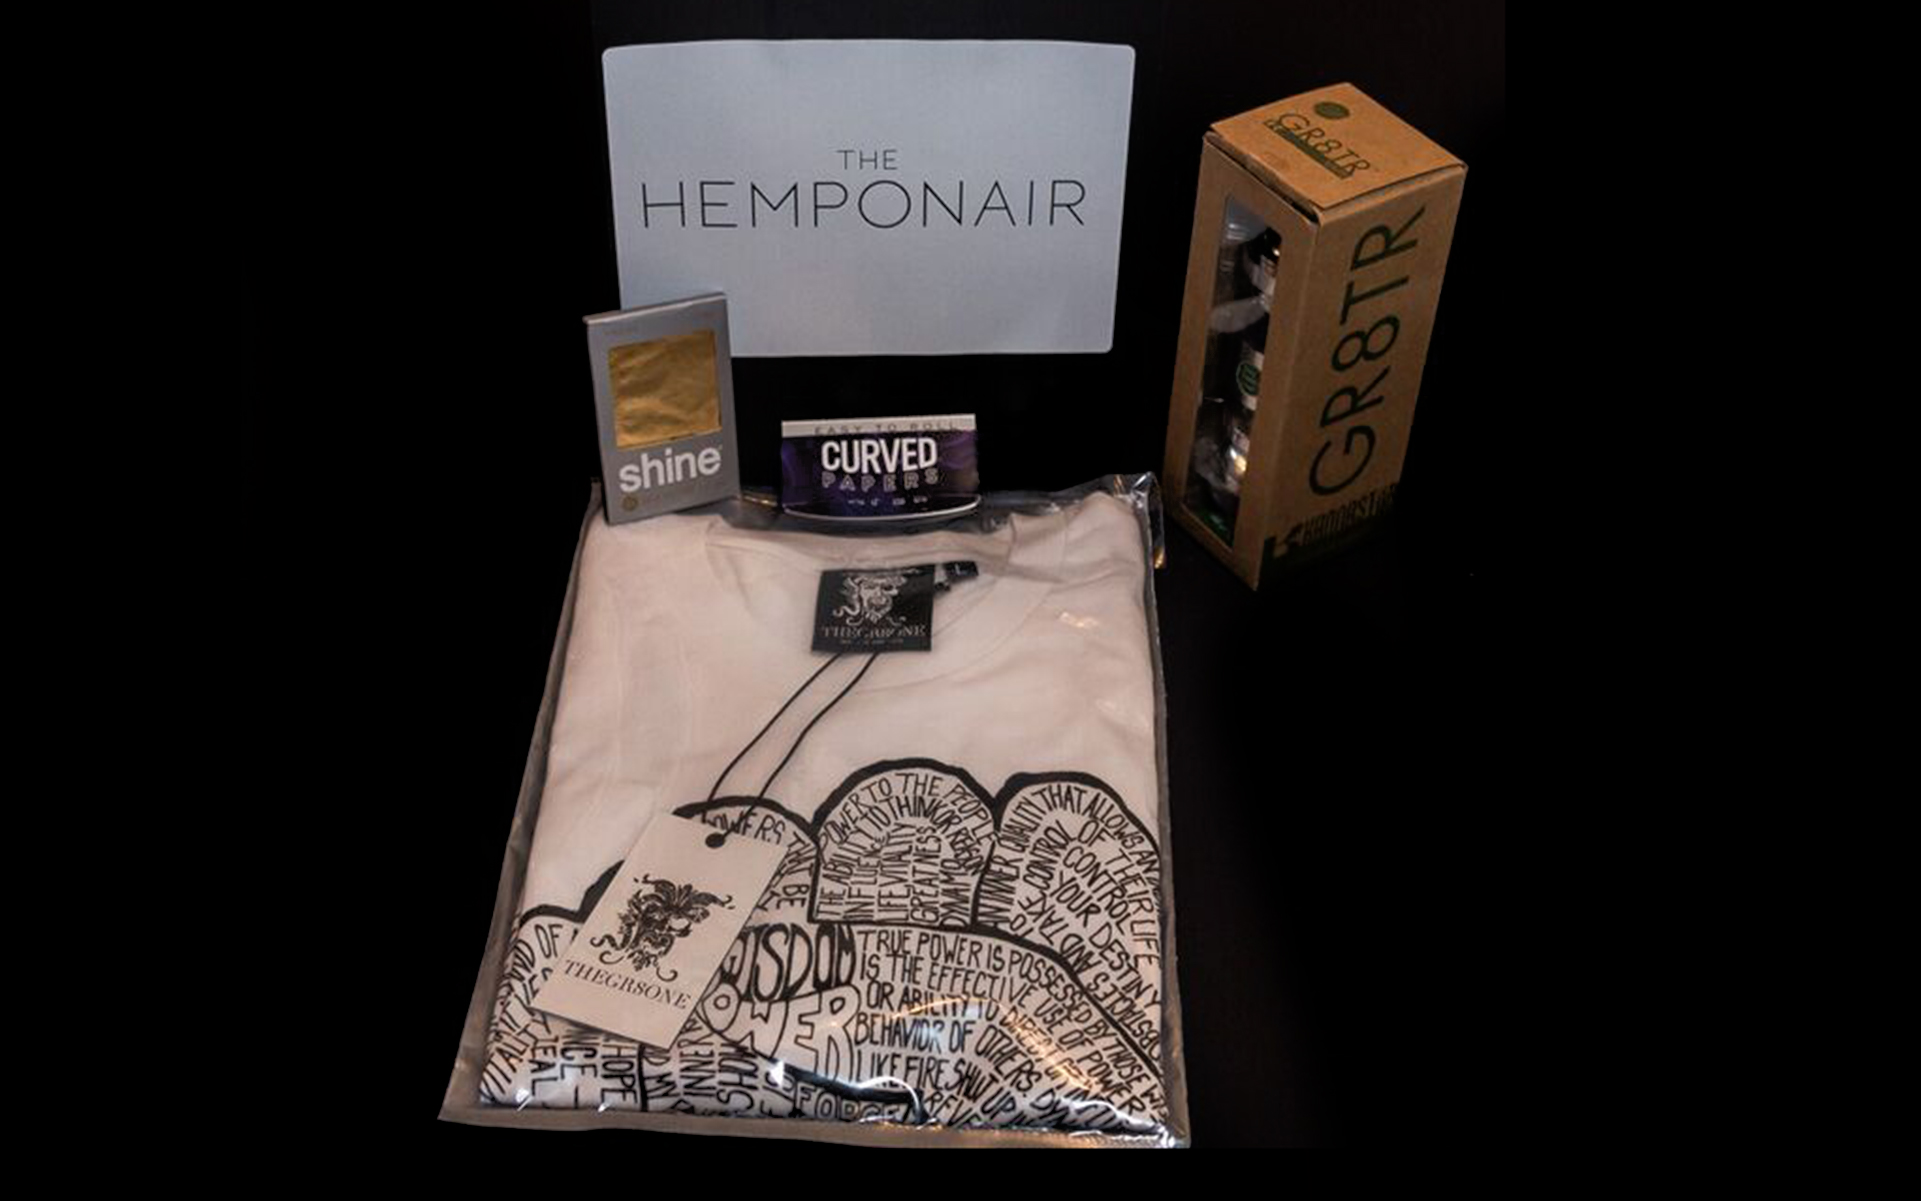 NYFW Cannabis Event Benefit — Goodie Bag